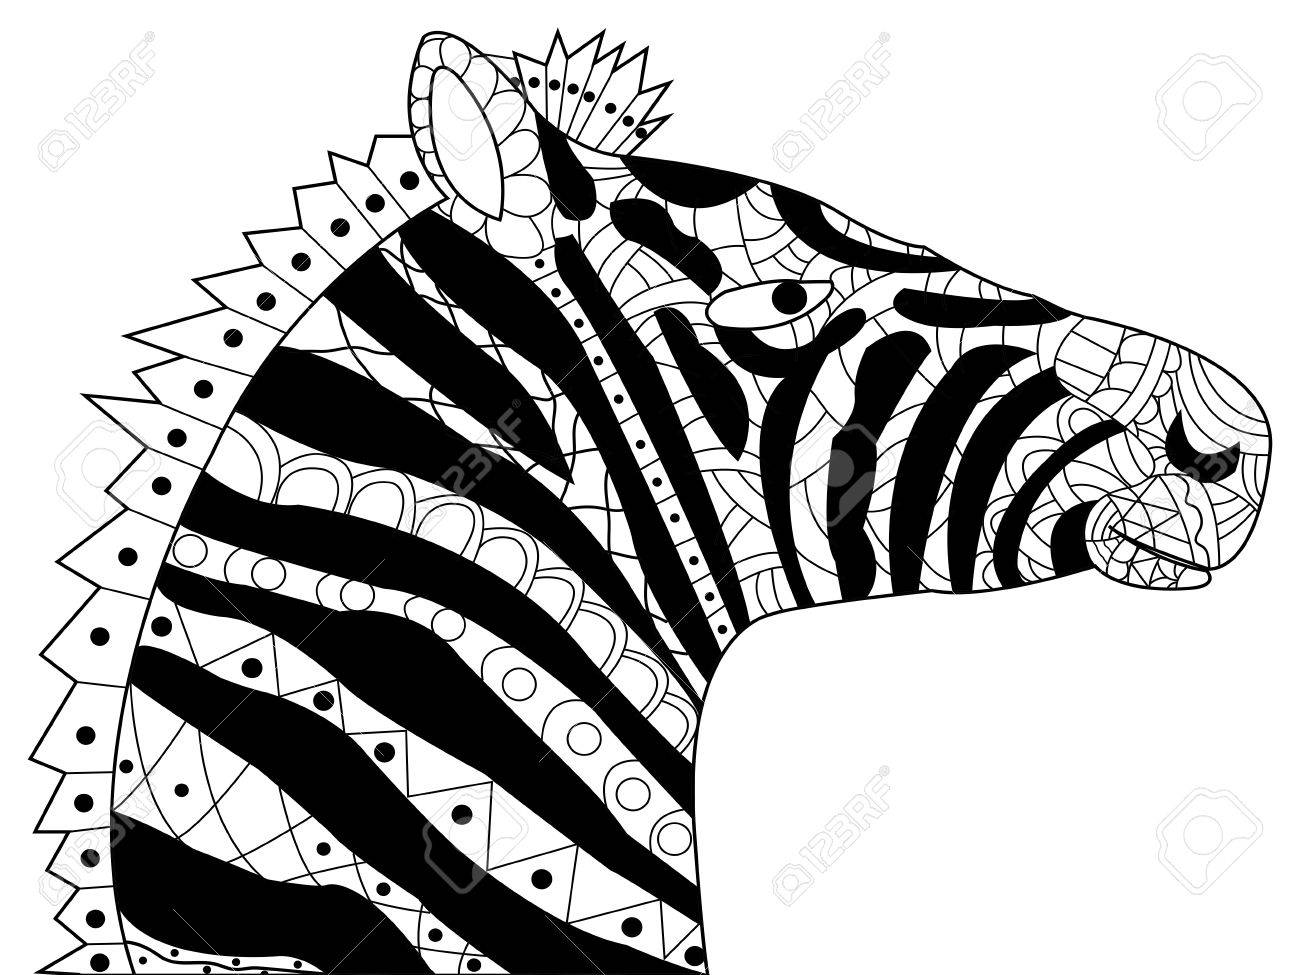 Head Zebra Coloring Book For Adults Illustration. Anti-stress ...